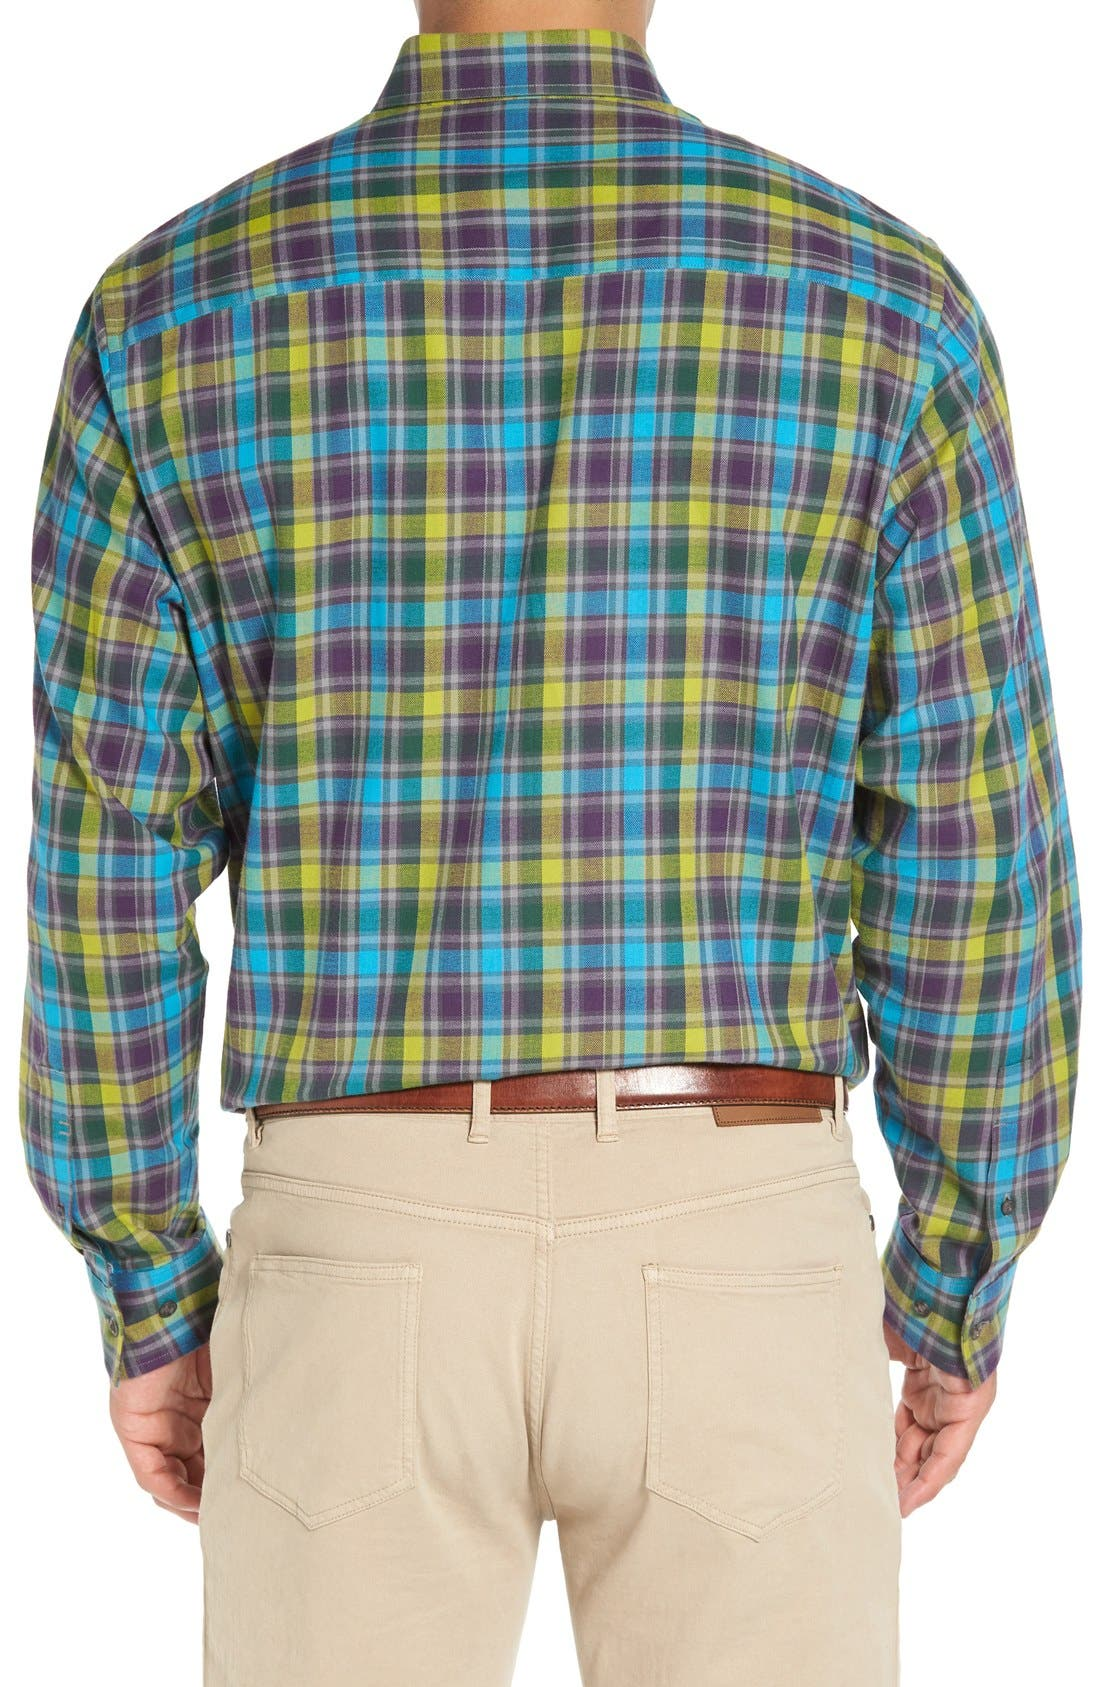 Alternate Image 2  - Cutter & Buck 'Timber' Plaid Cotton Twill Sport Shirt (Big & Tall)